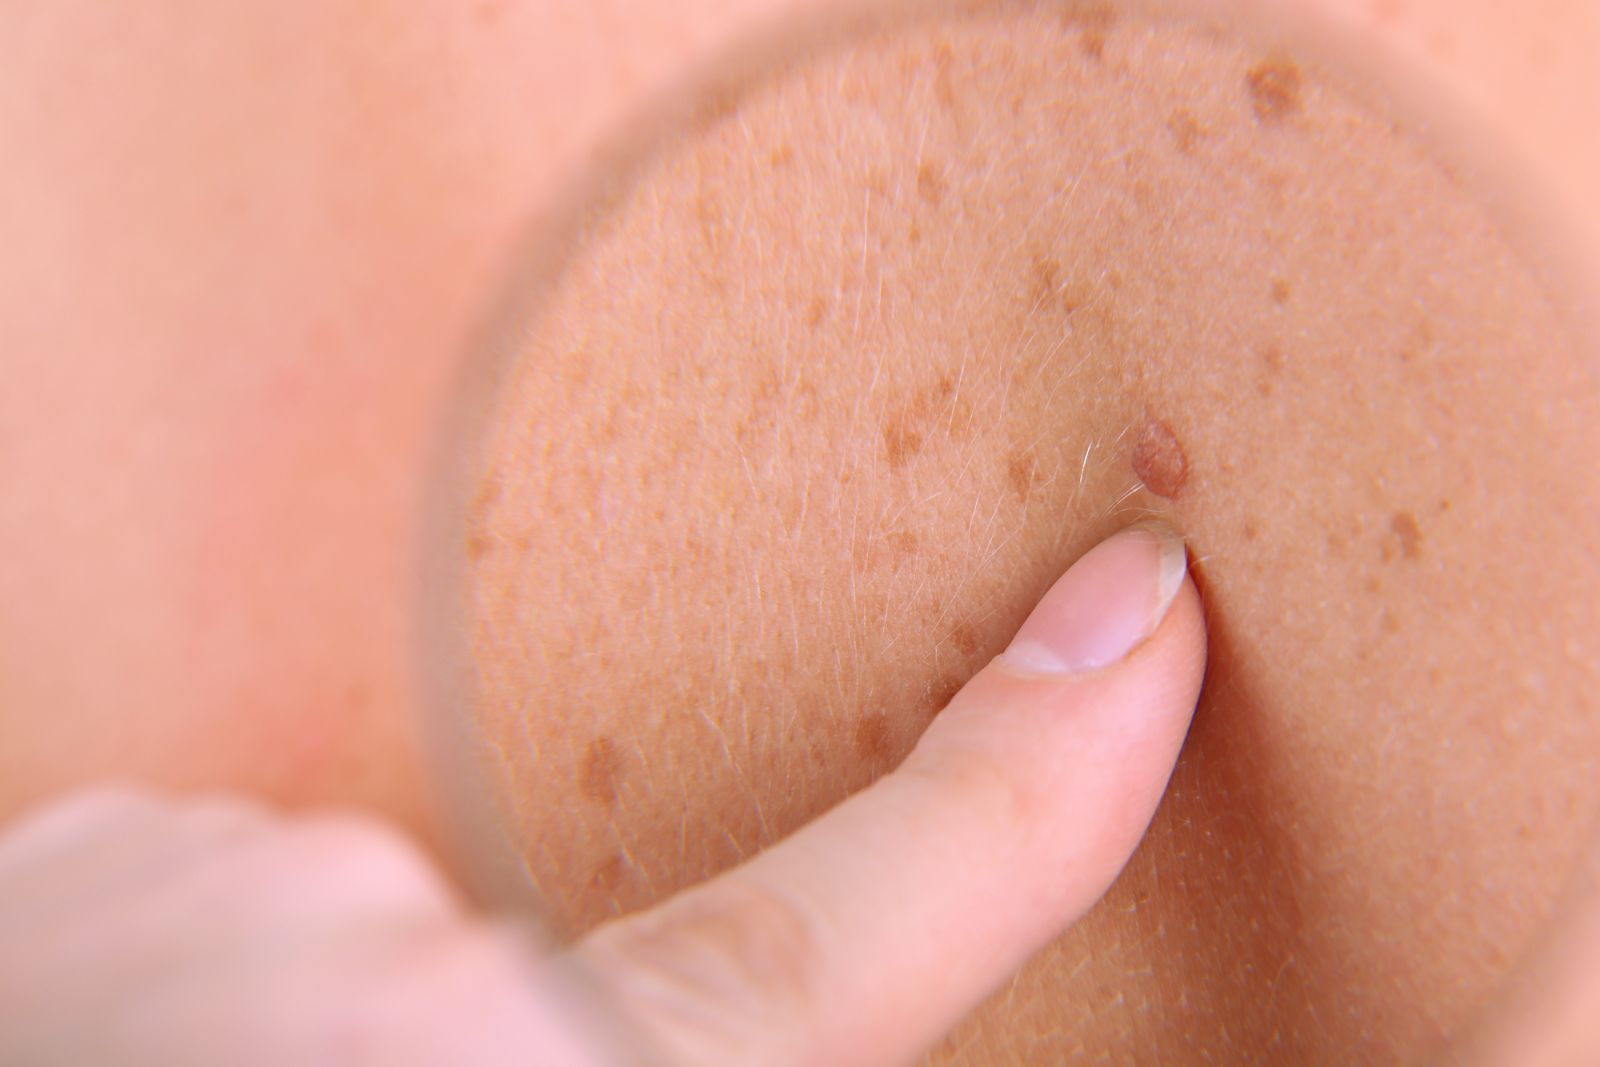 Taking Care of Your Skin Against Skin Cancers